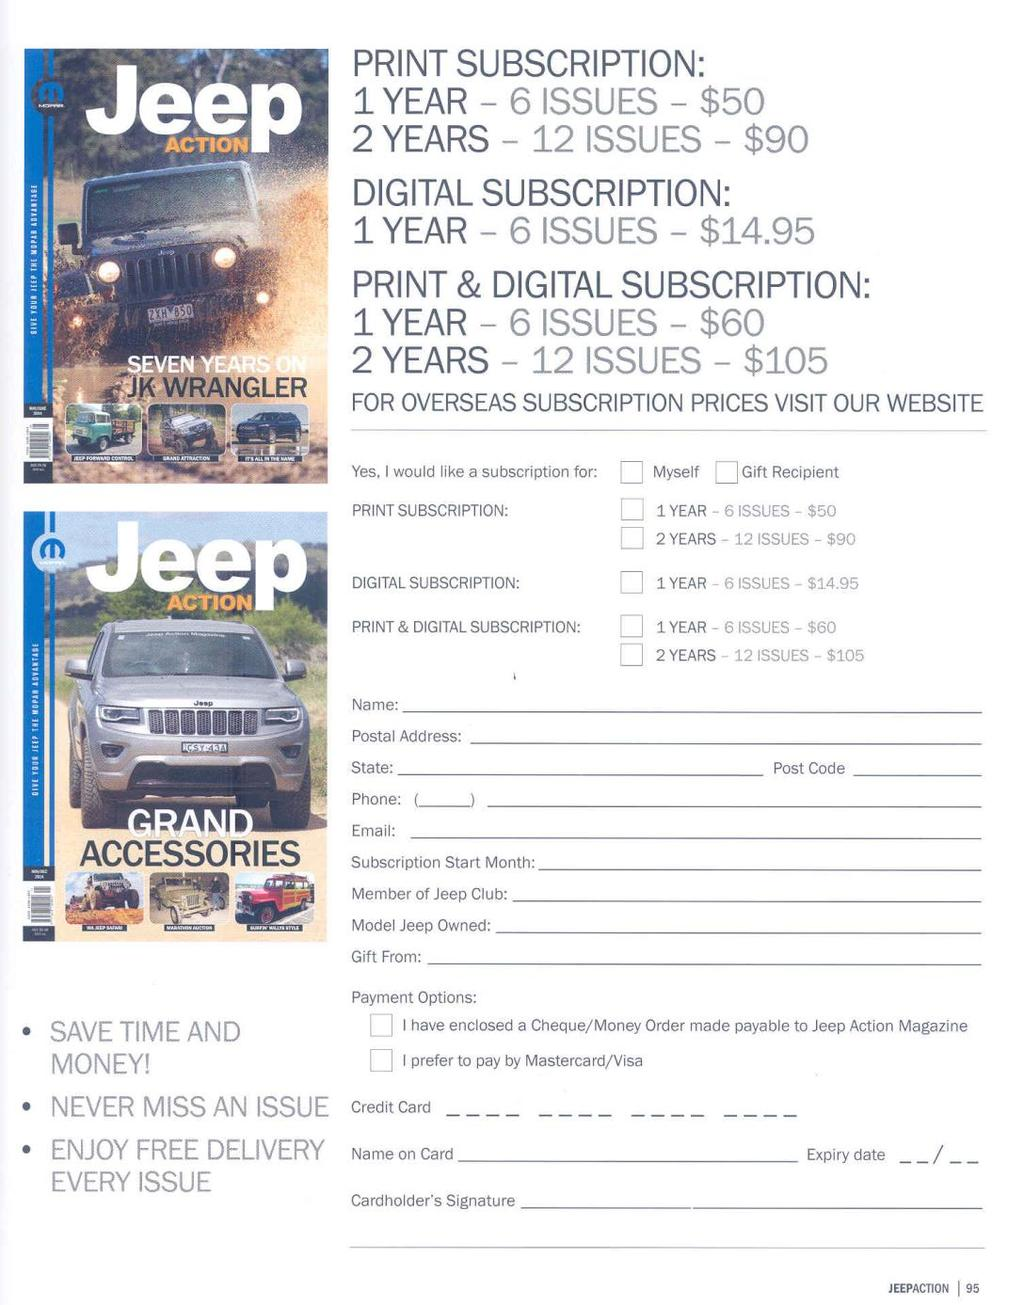 We include this as a regular basis as an opportunity to subscribe to the Worlds Best Jeep Magazine.